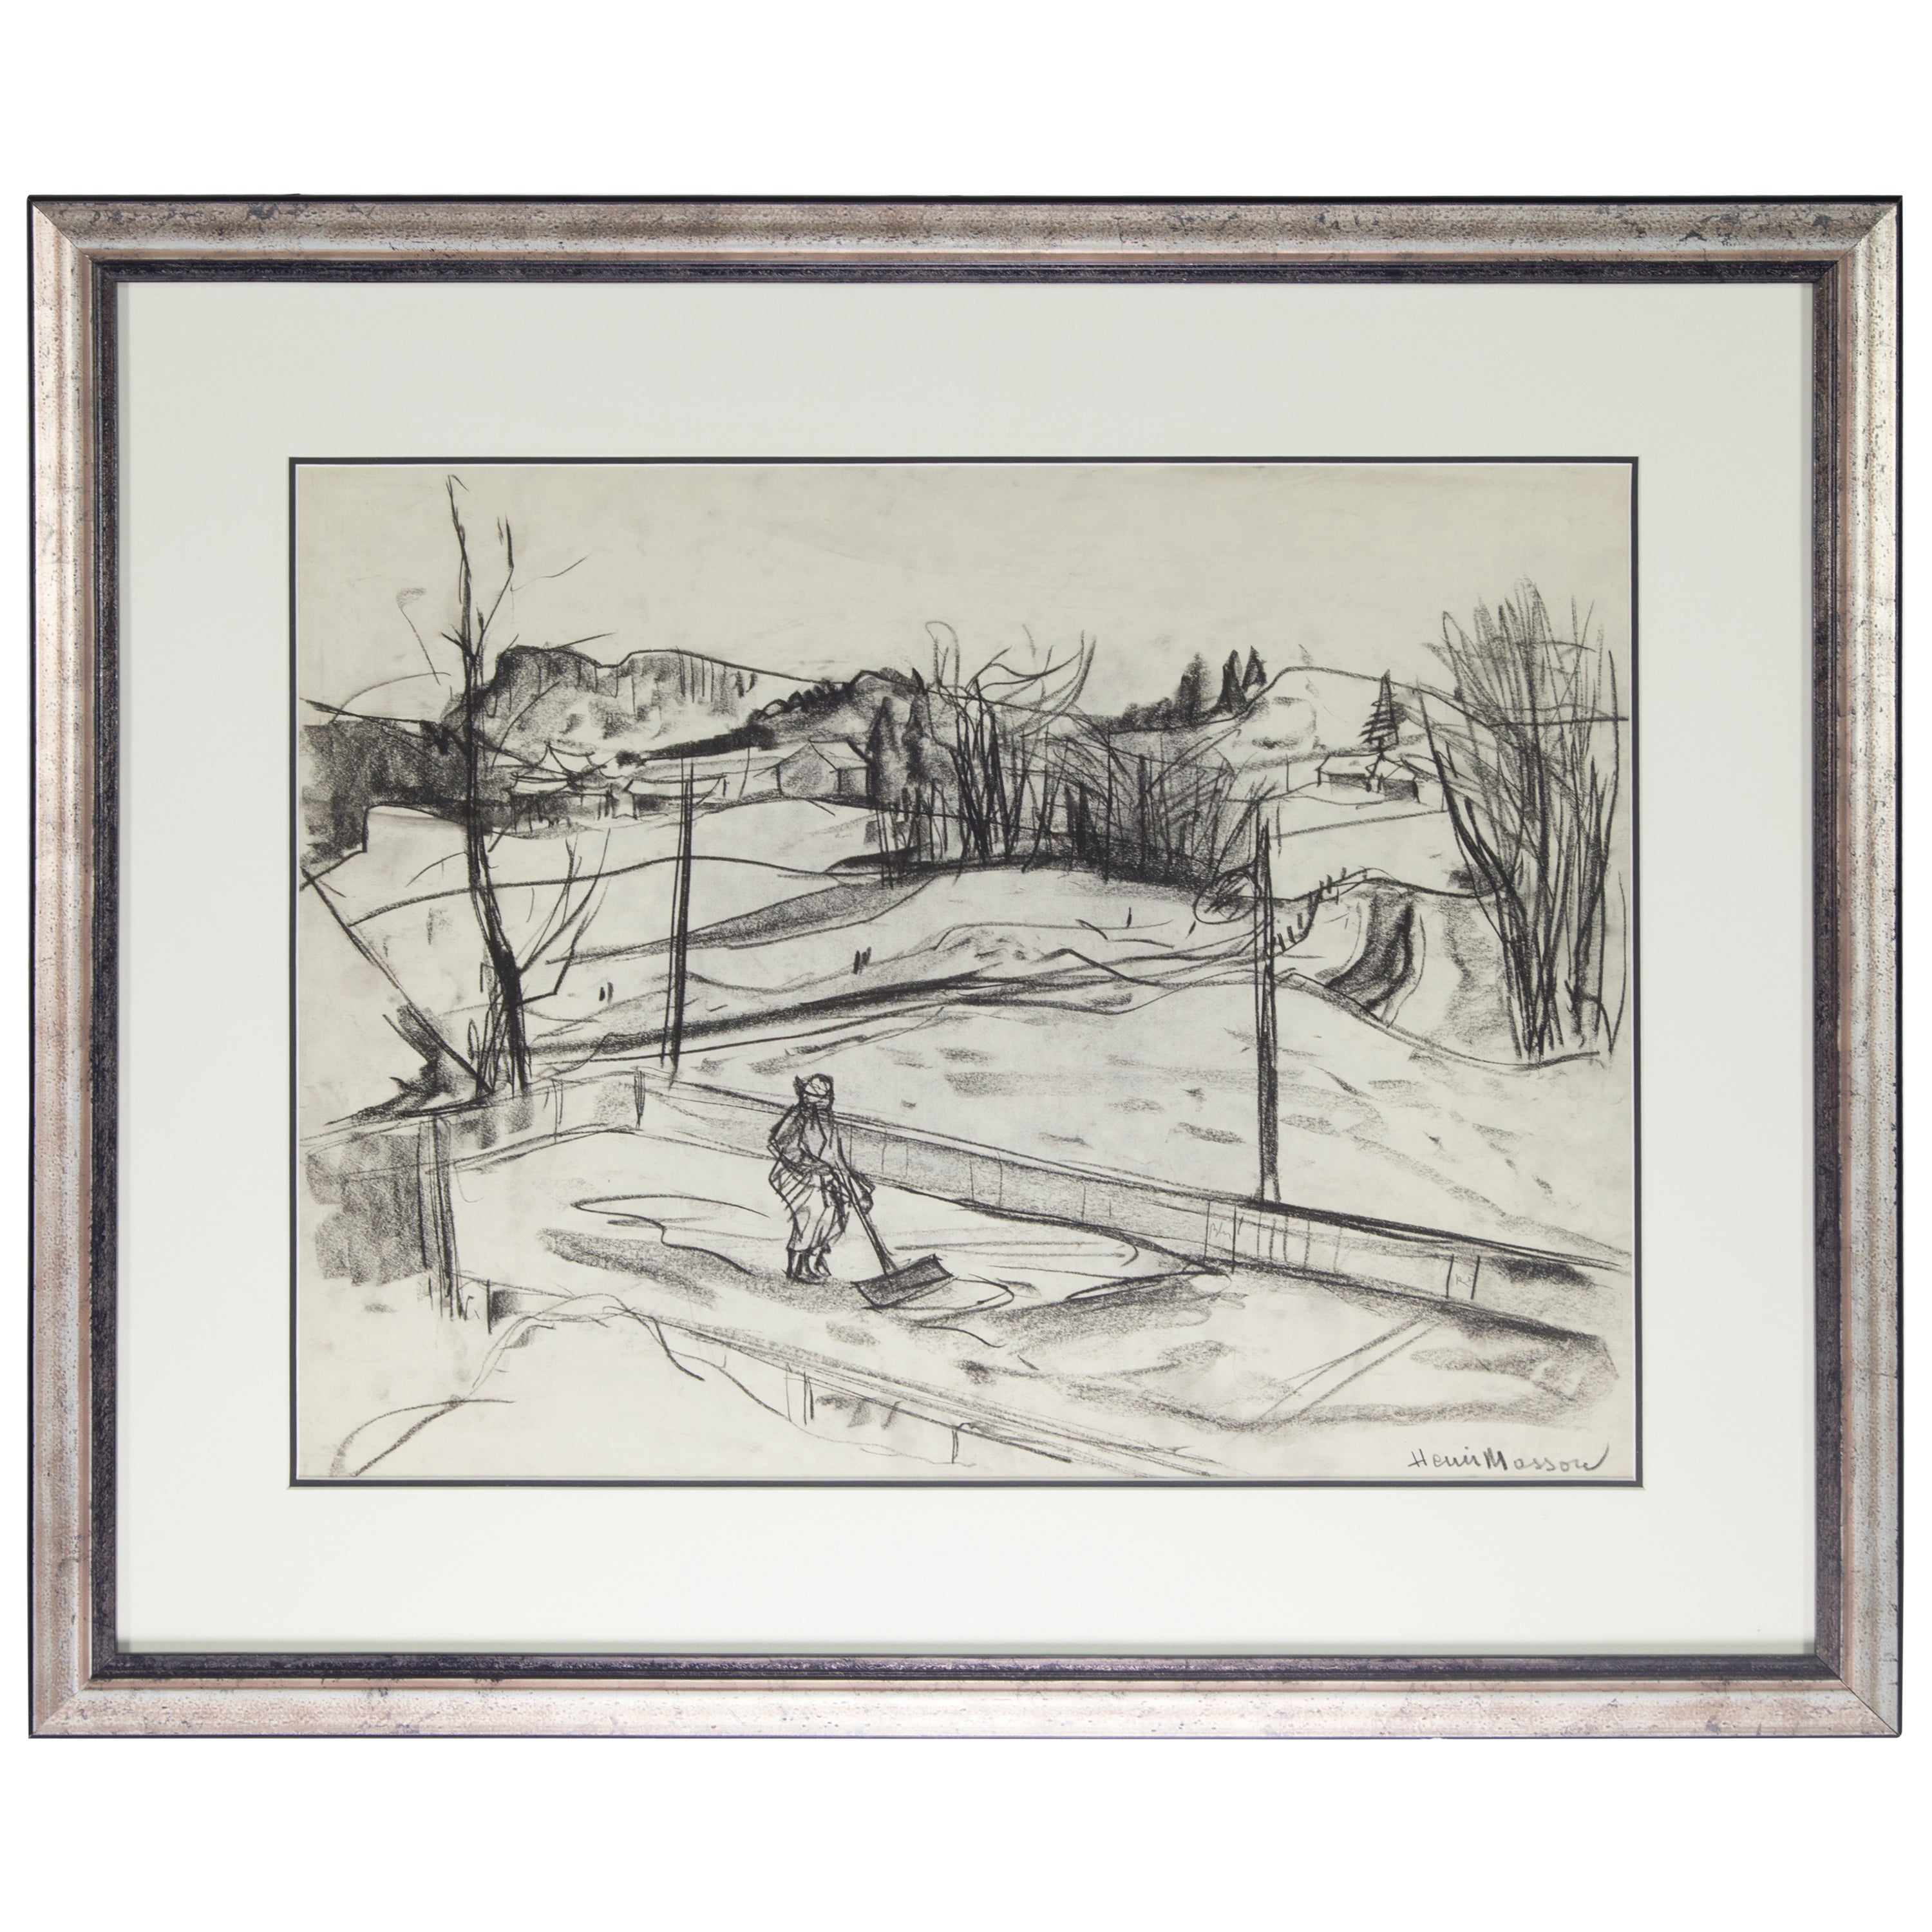 Estate Henri Leopold Masson Untitled Landscape Charcoal on Paper